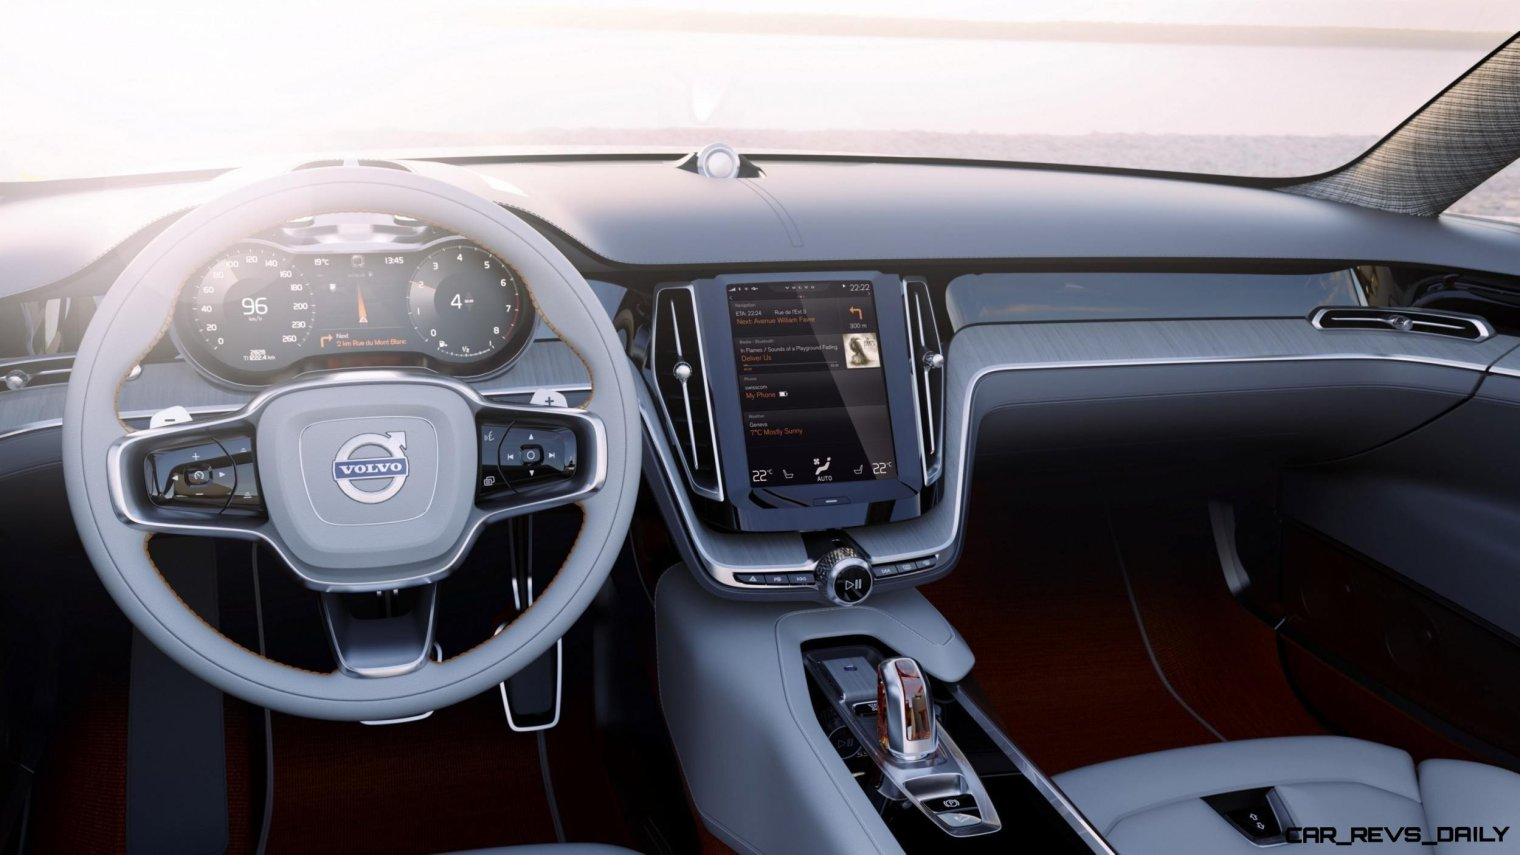 Concept Estate Confirms It! Volvo's New Design Lead Th. Ingenlath Should Be Sweden's Man of the Year 7